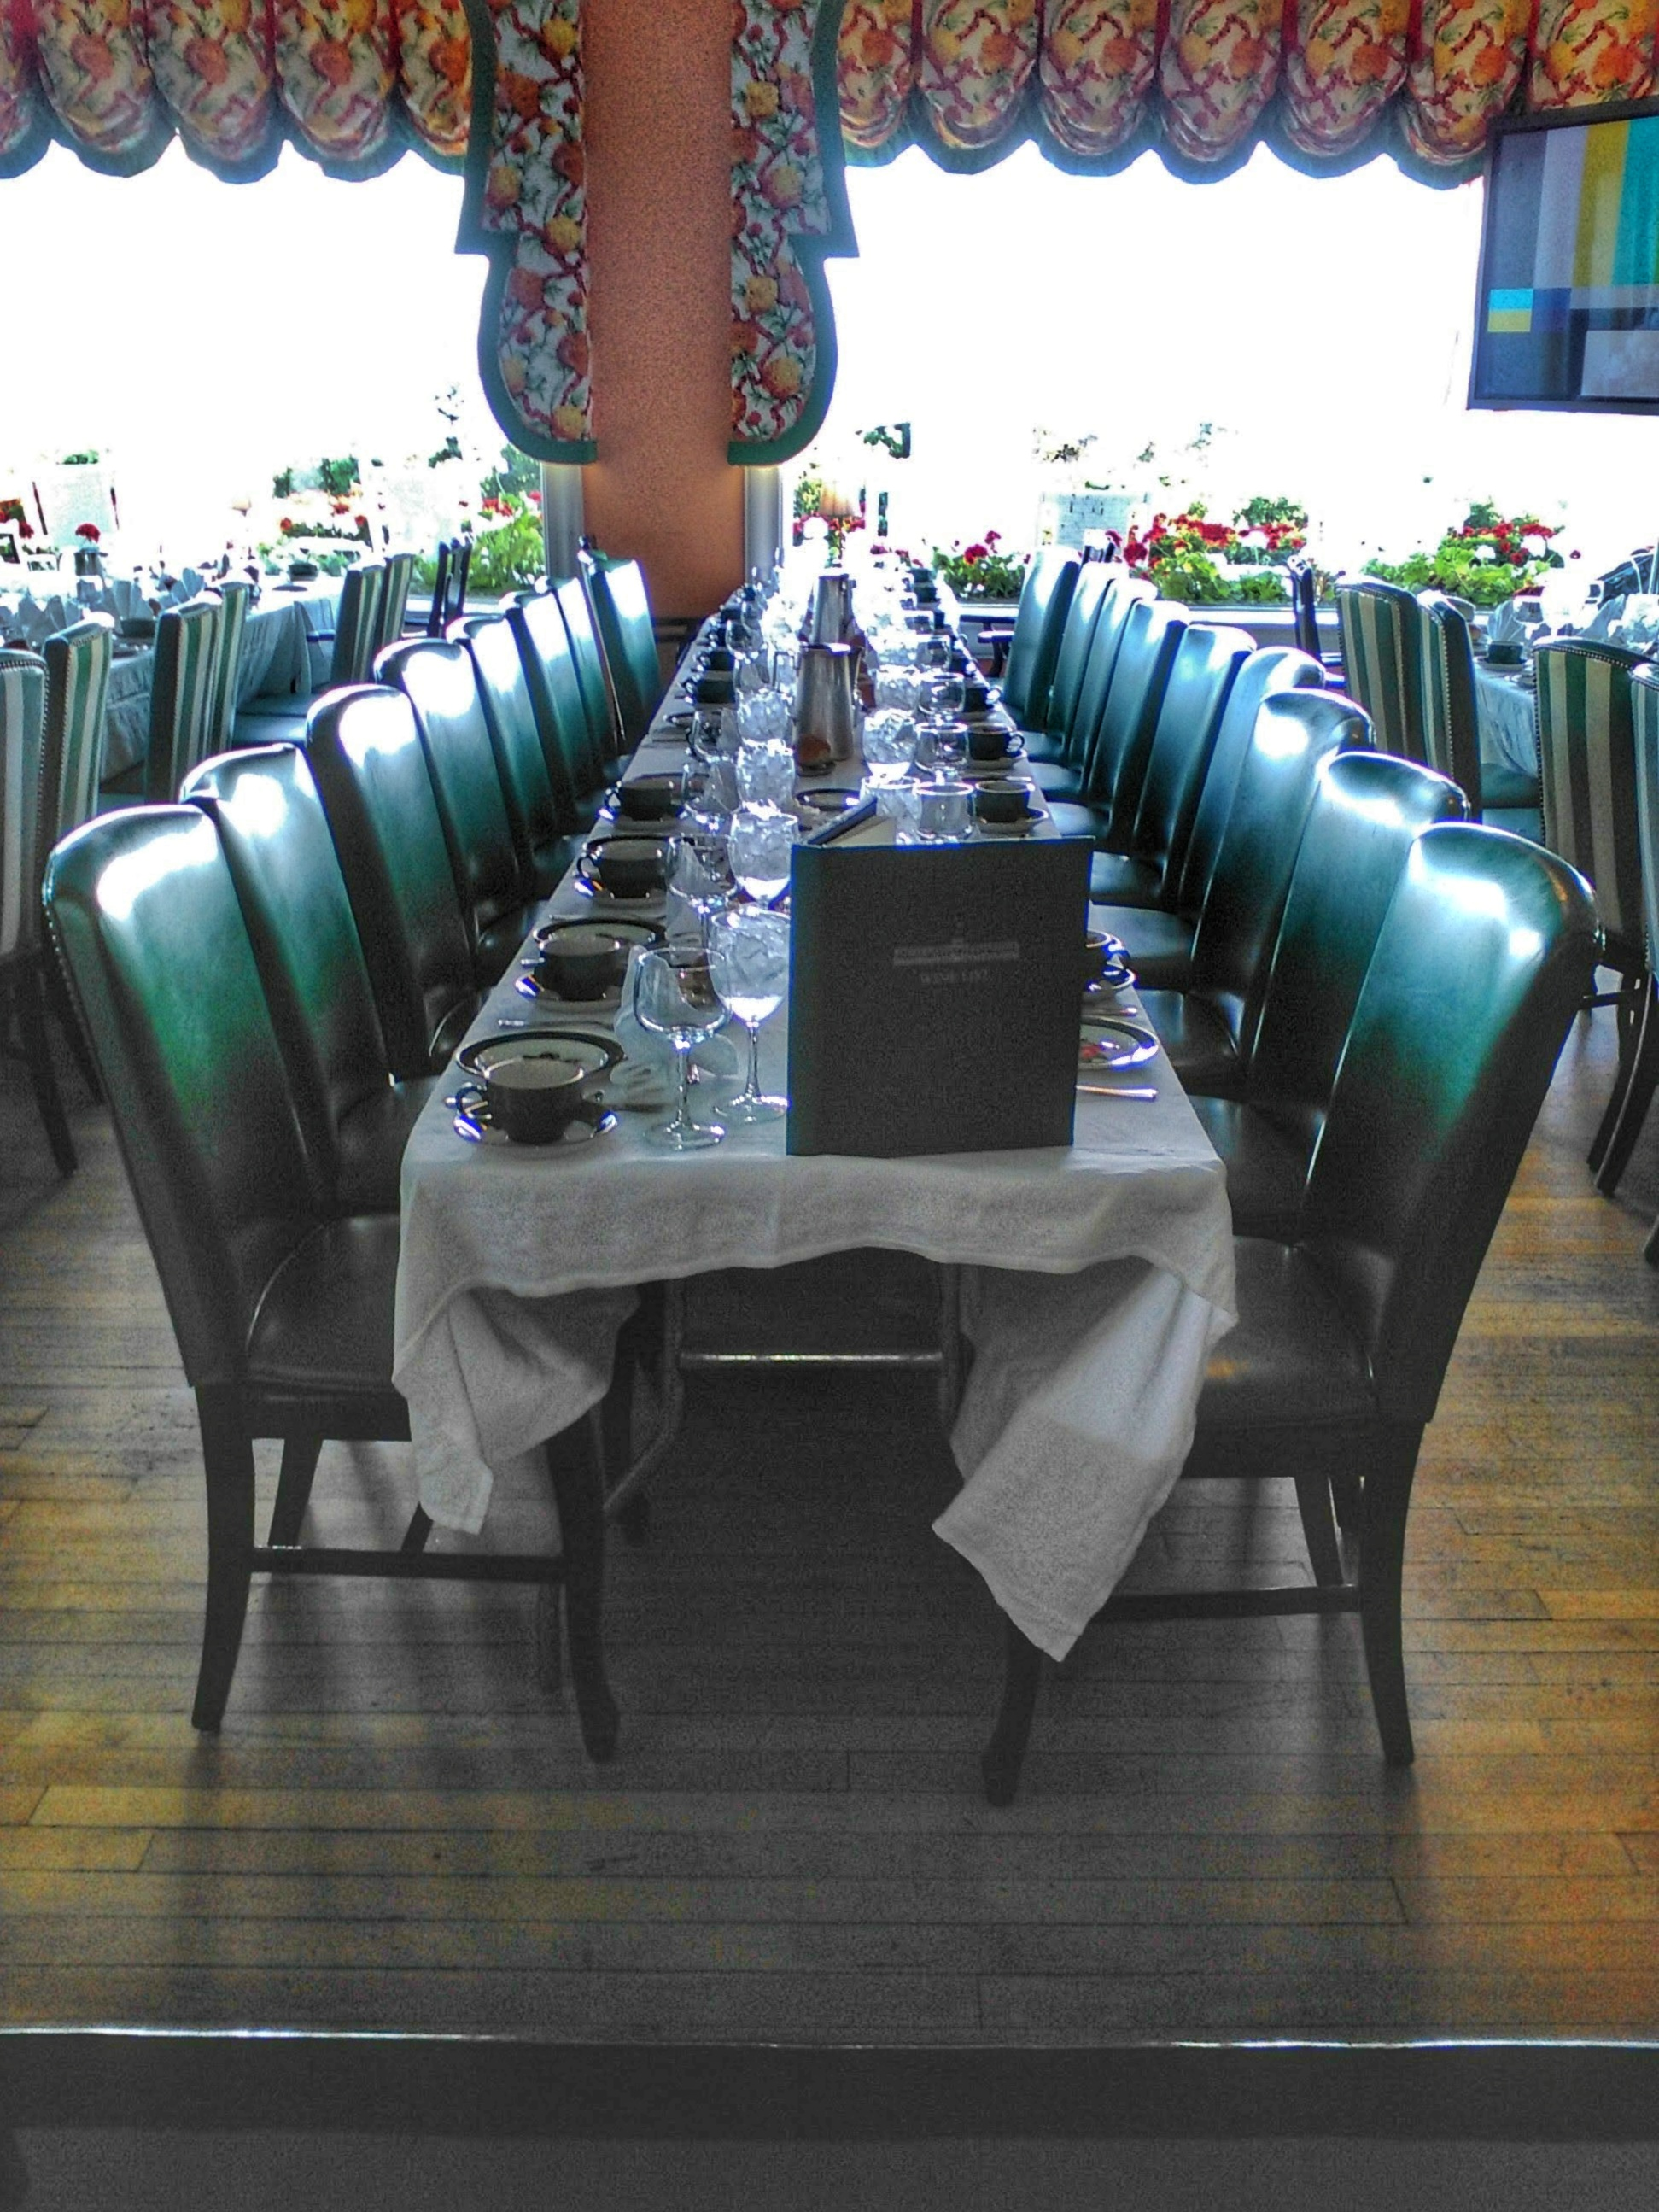 Salle Manger - Grand Hotel Main Dining Room